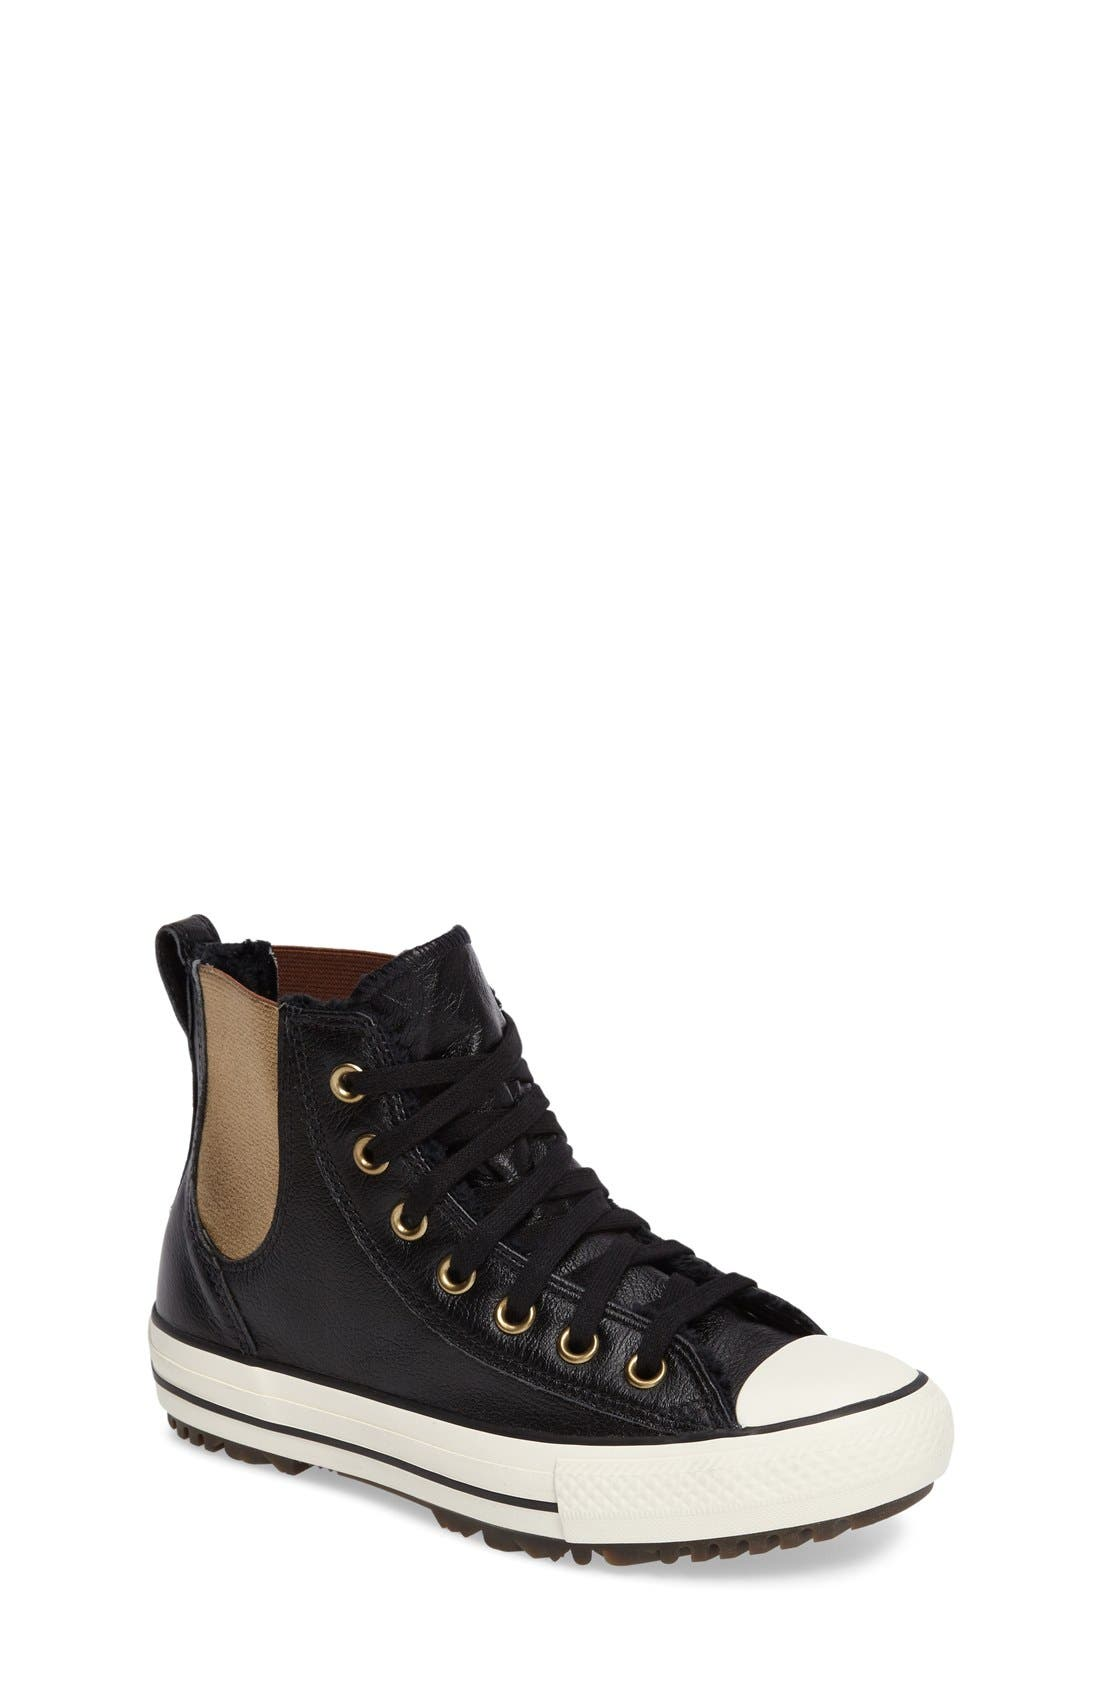 Main Image - Converse Chuck Taylor® All Star® Faux Fur Chelsea Sneaker (Women)